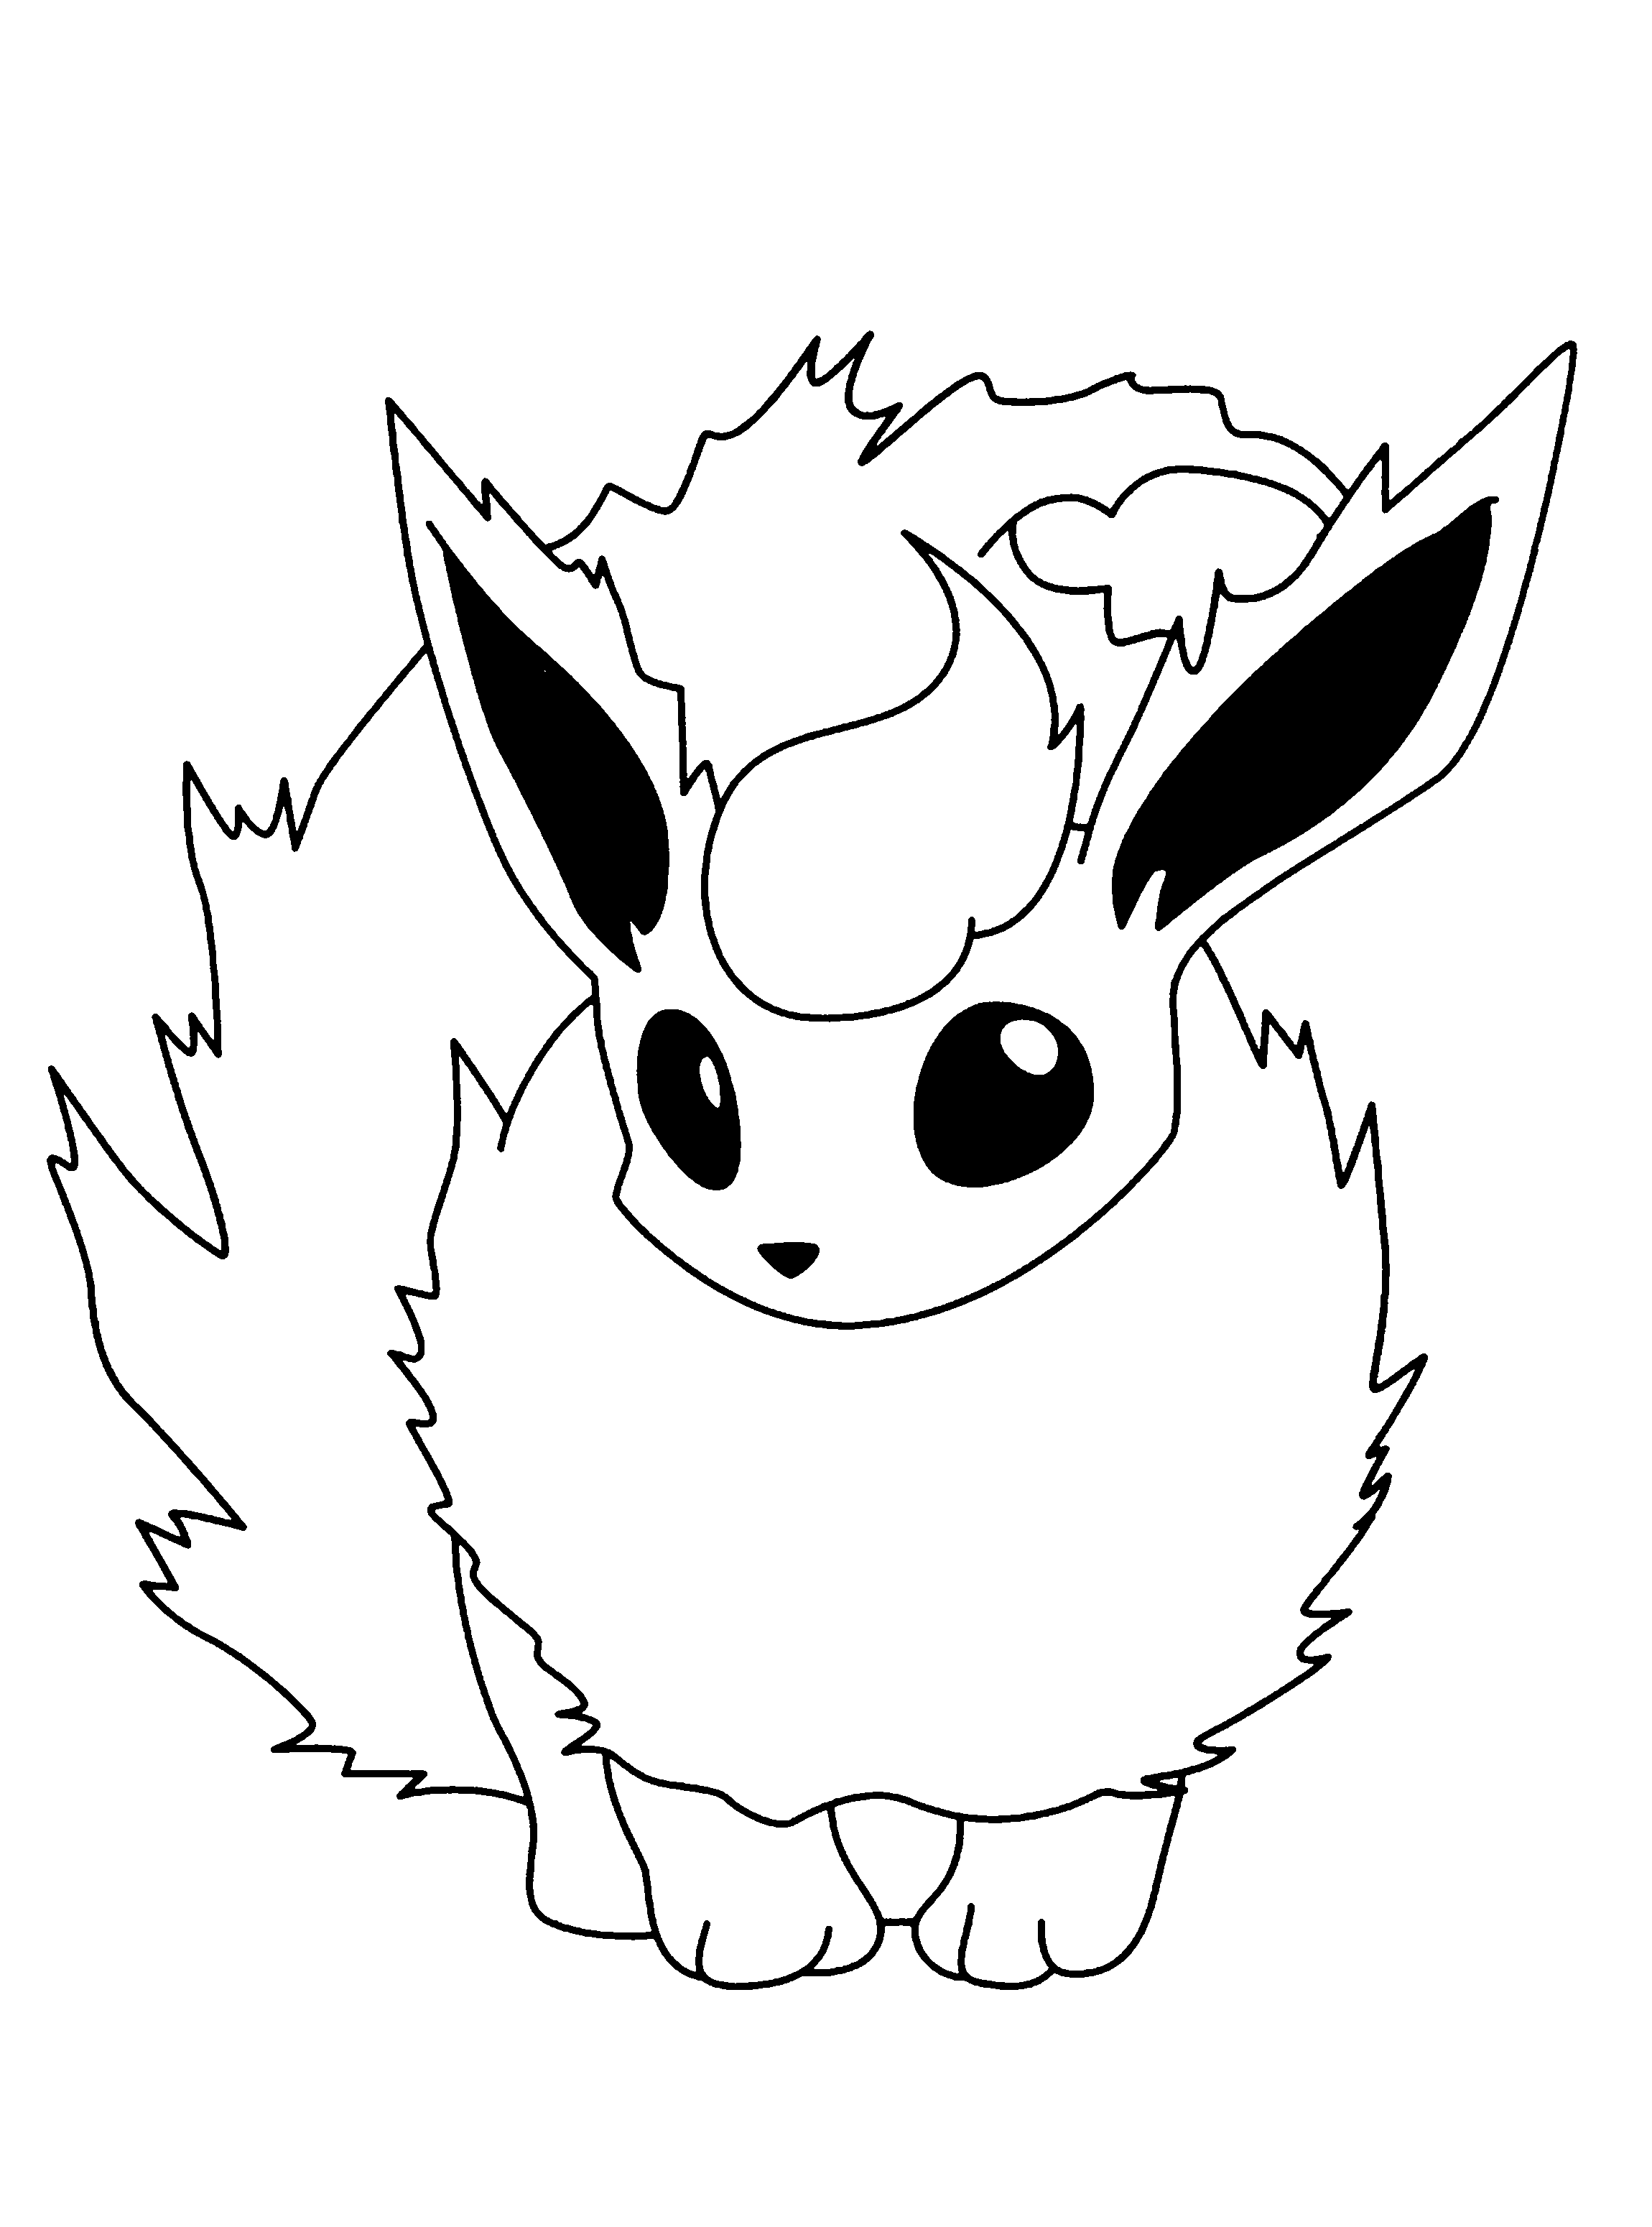 Coloring pages download - Pokemon Coloring Pages Download Pokemon Images And Print Them For